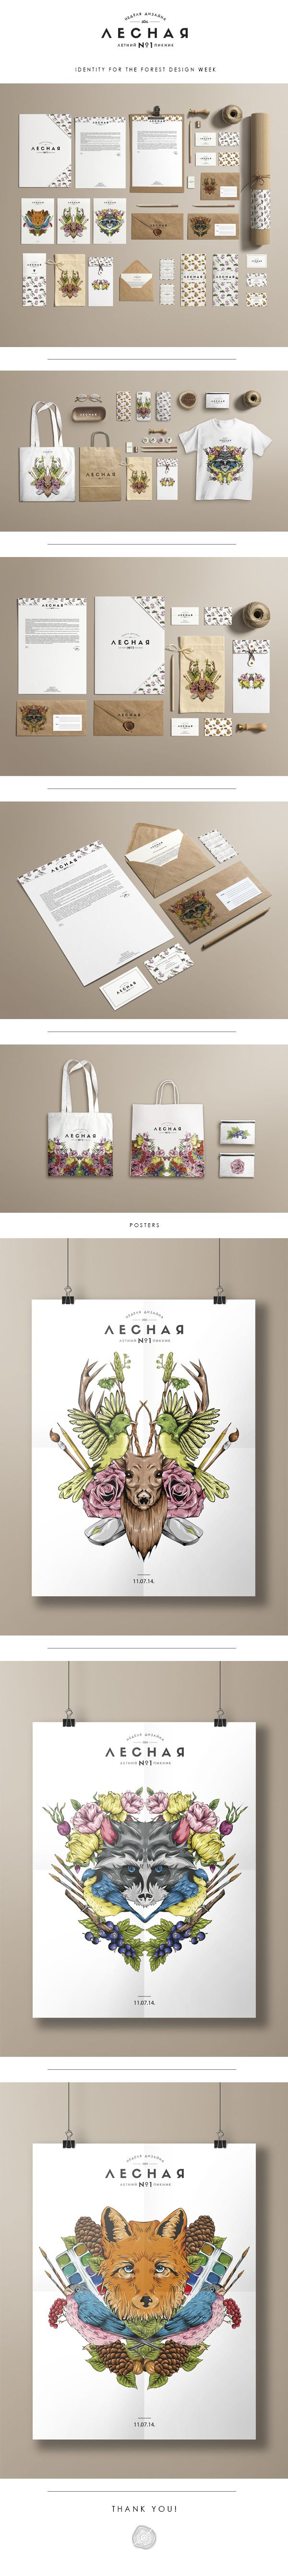 Forest Design Week on Behance | #stationary #corporate #design #corporatedesign #identity #branding #marketing < repinned by www.BlickeDeeler.de | Visit our website: www.blickedeeler.de/leistungen/corporate-design